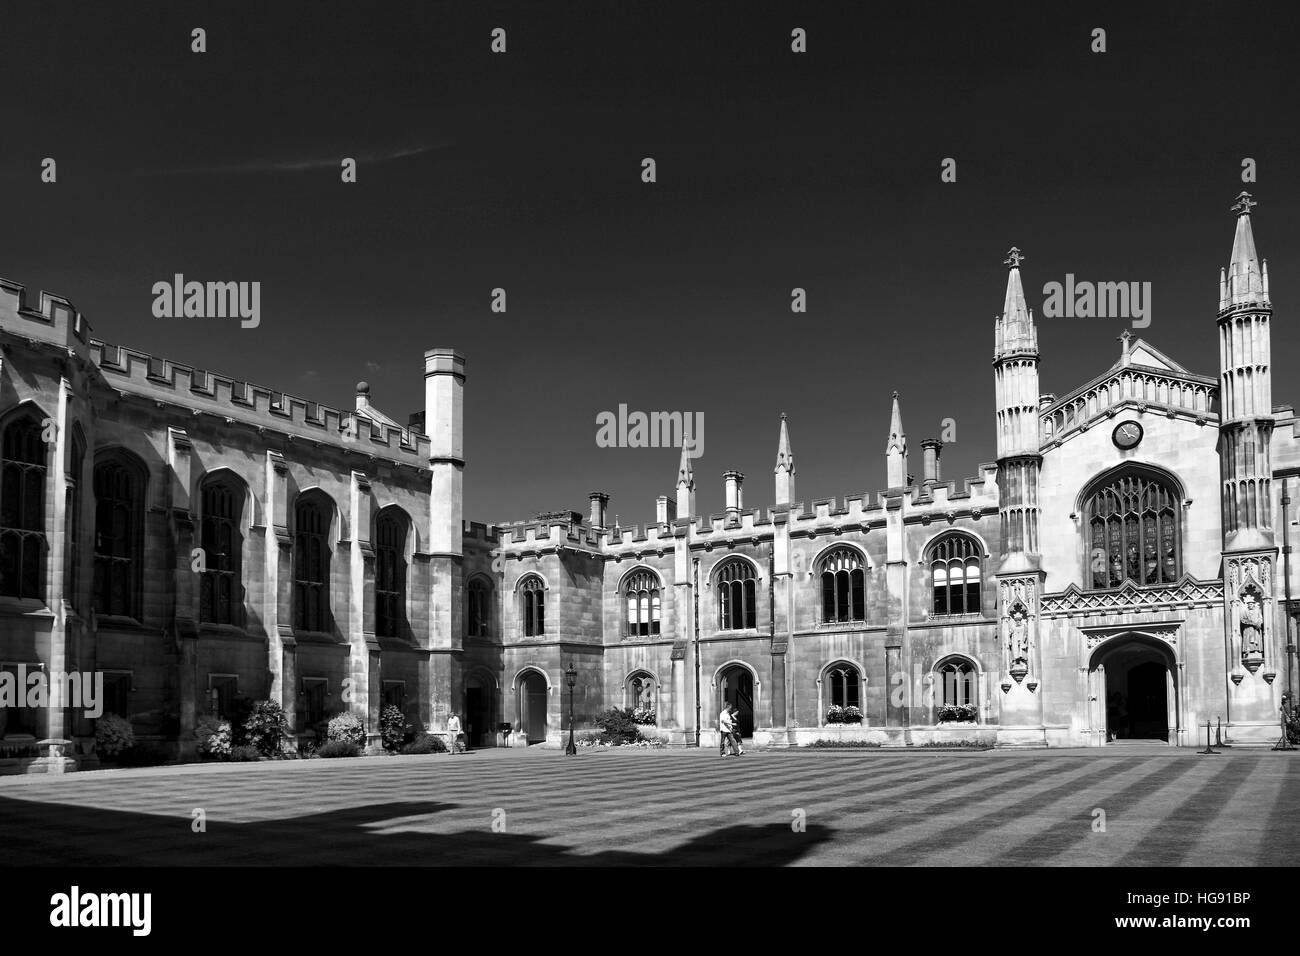 An exterior view of Corpus Christi College a University college, Cambridge City, Cambridgeshire, England, UK - Stock Image